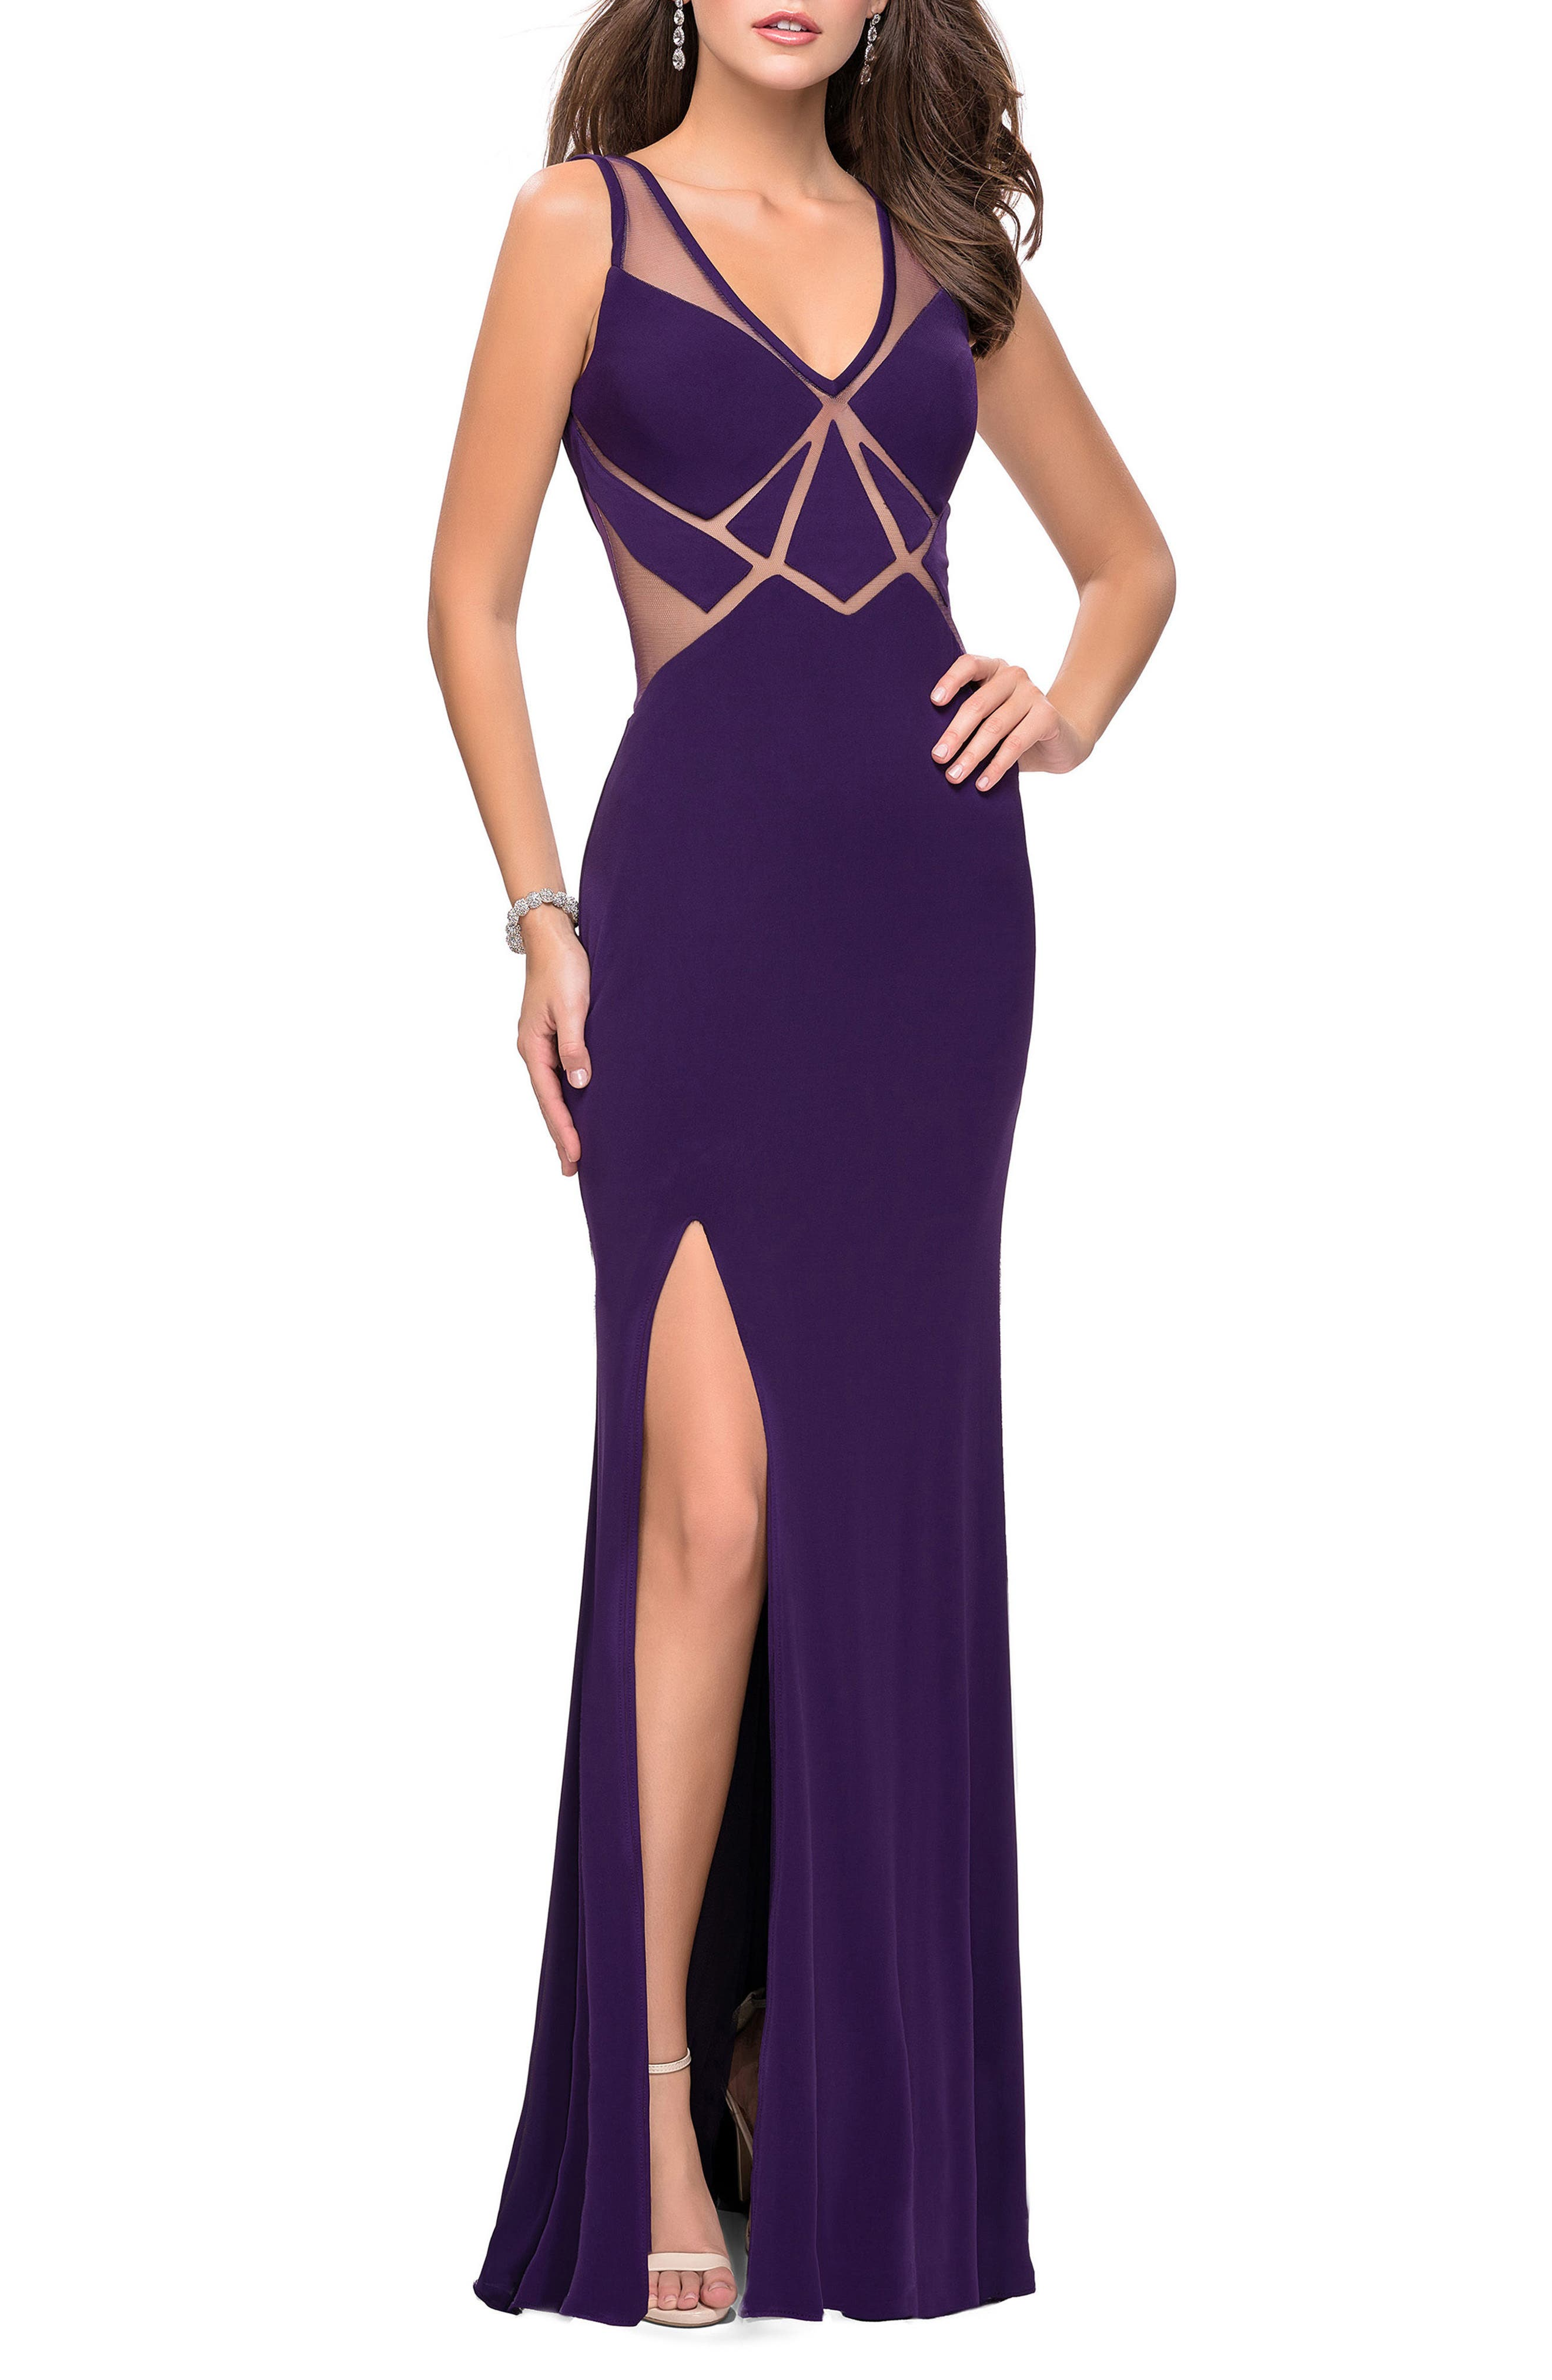 Geometric Cutout Jersey Gown,                             Main thumbnail 1, color,                             501